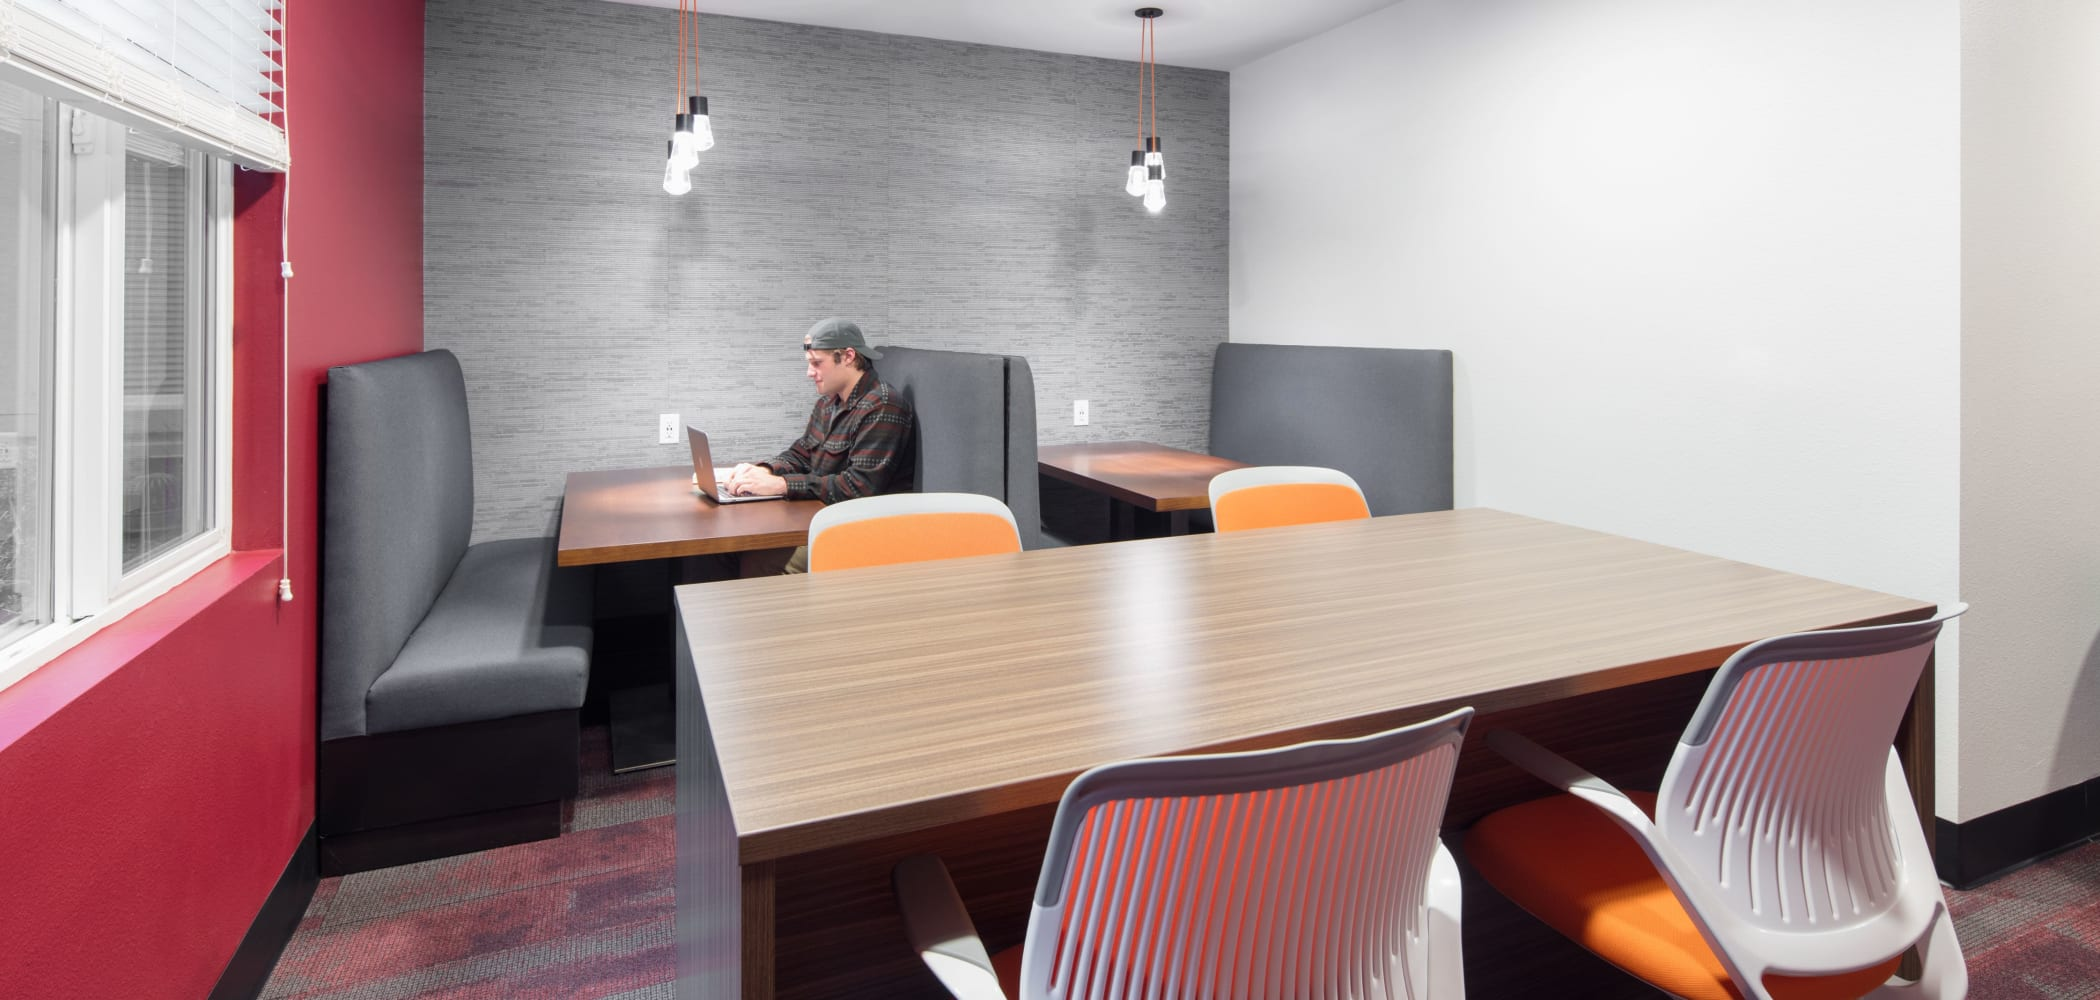 Private study room at UNCOMMON Fort Collins in Fort Collins, Colorado